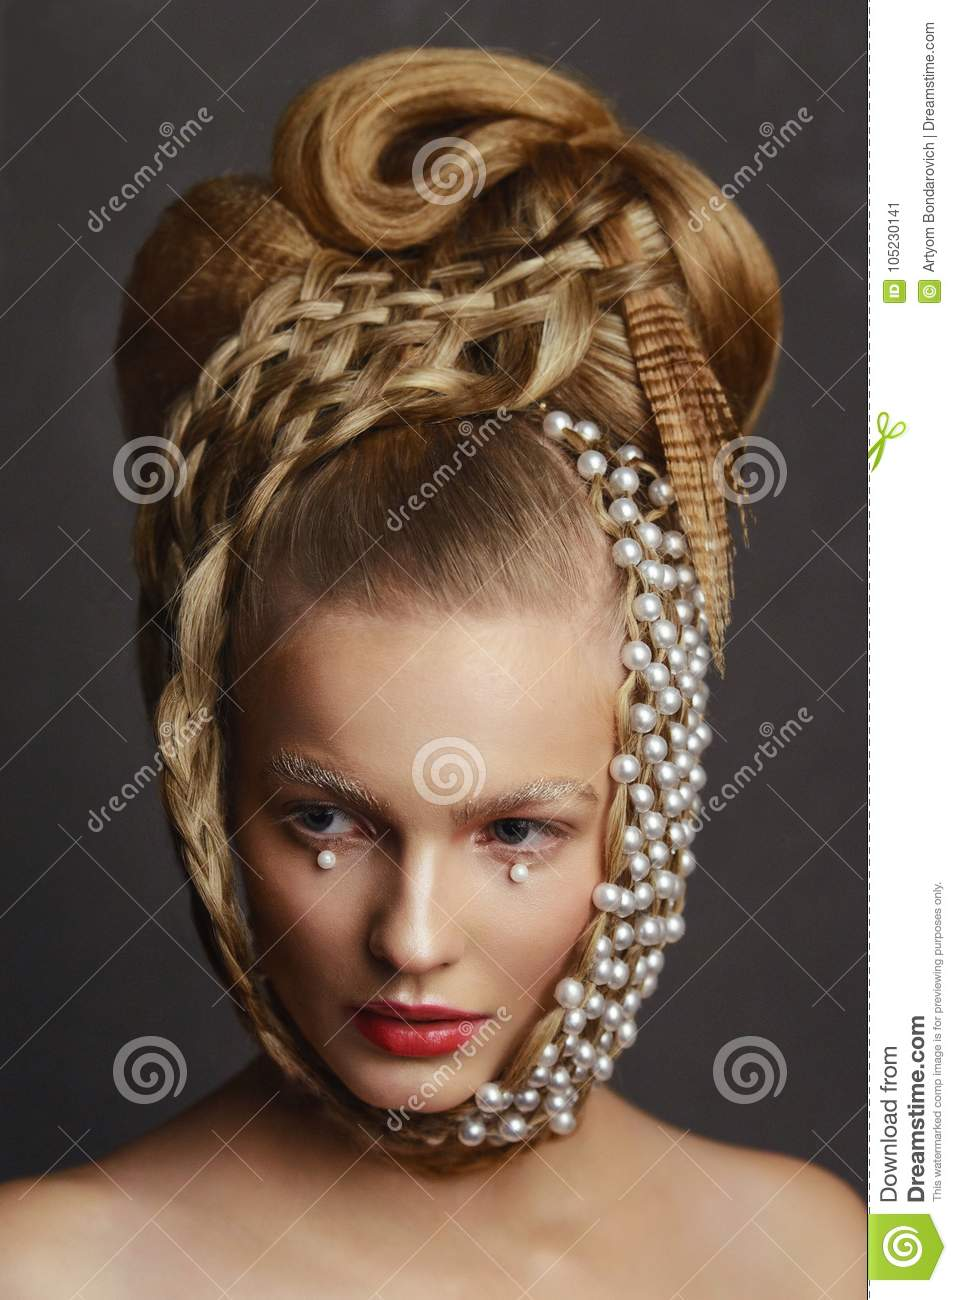 Beauty portrait of young woman with creative fashion hairstyle.